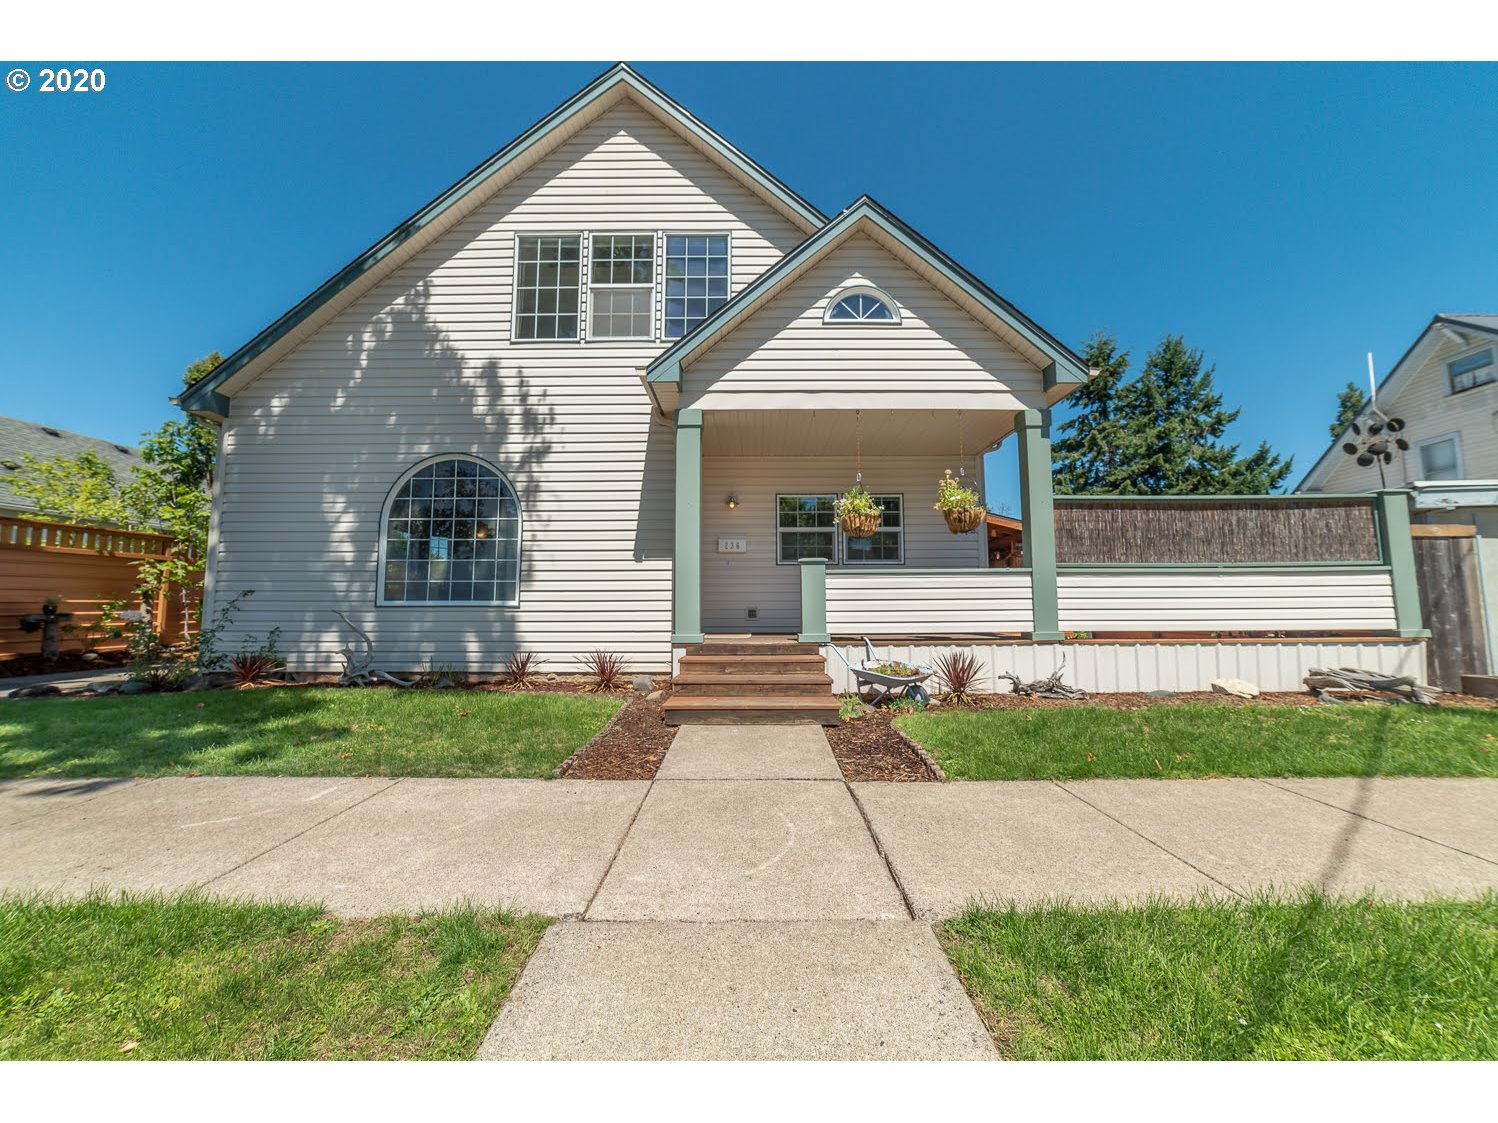 236 E MADISON AVE, Cottage Grove OR 97424